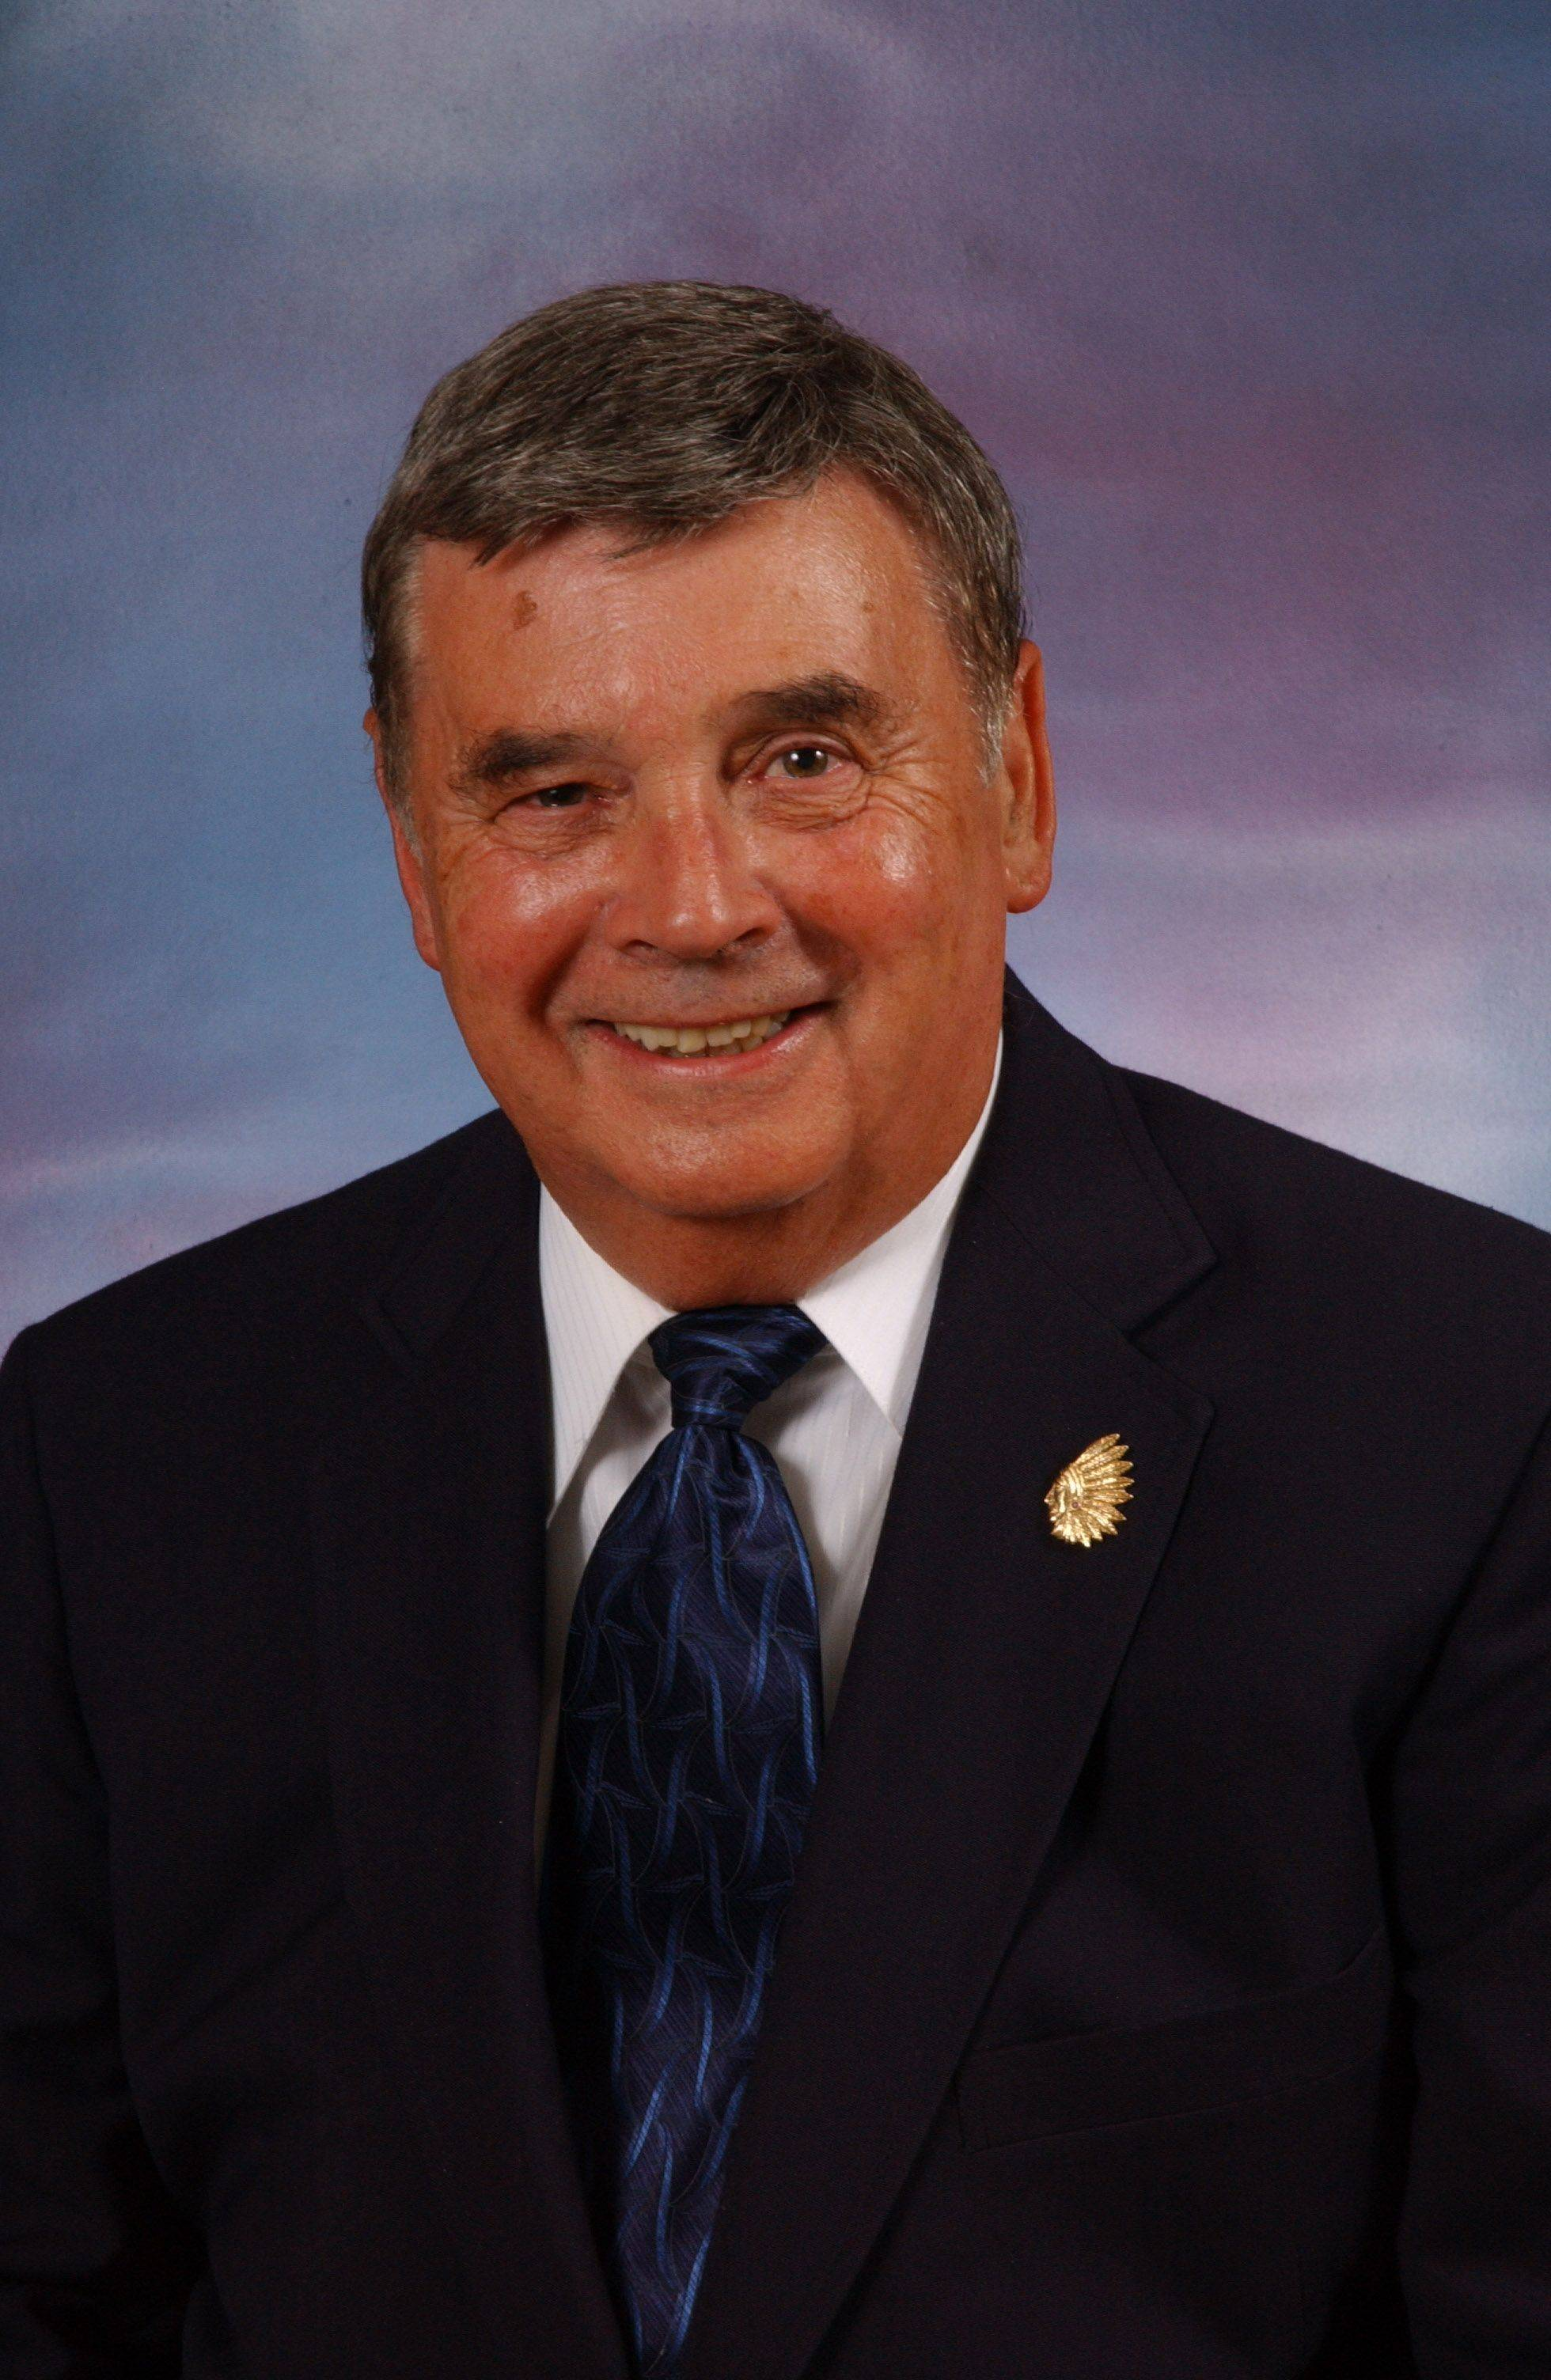 Mayor Ed Bender